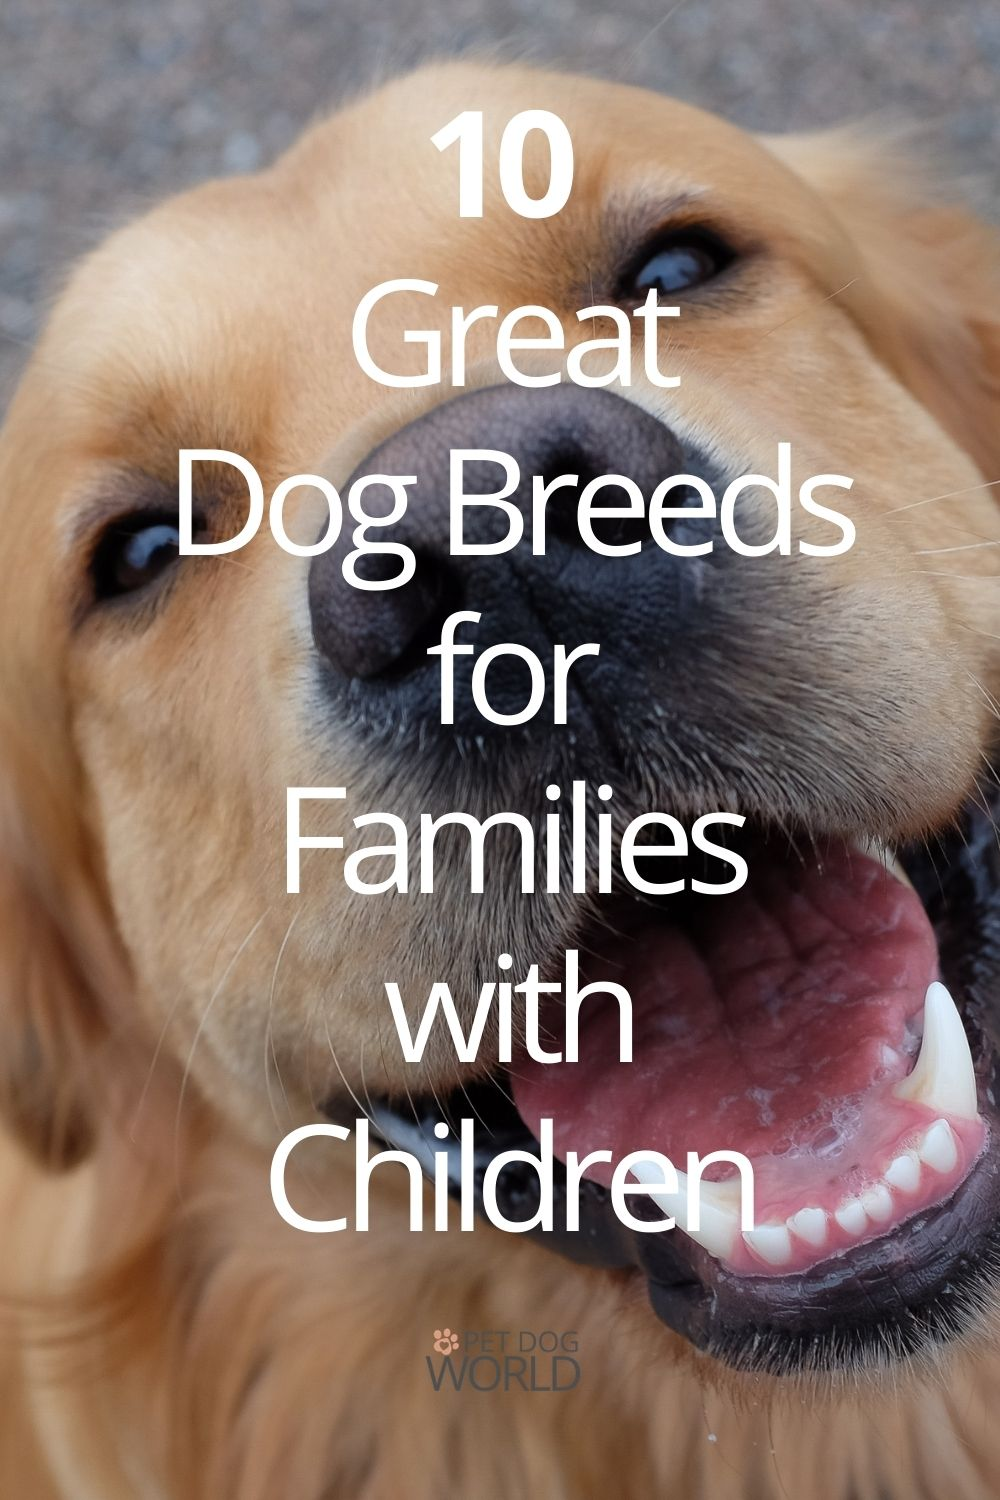 10 Great Dog Breeds for Families with Children